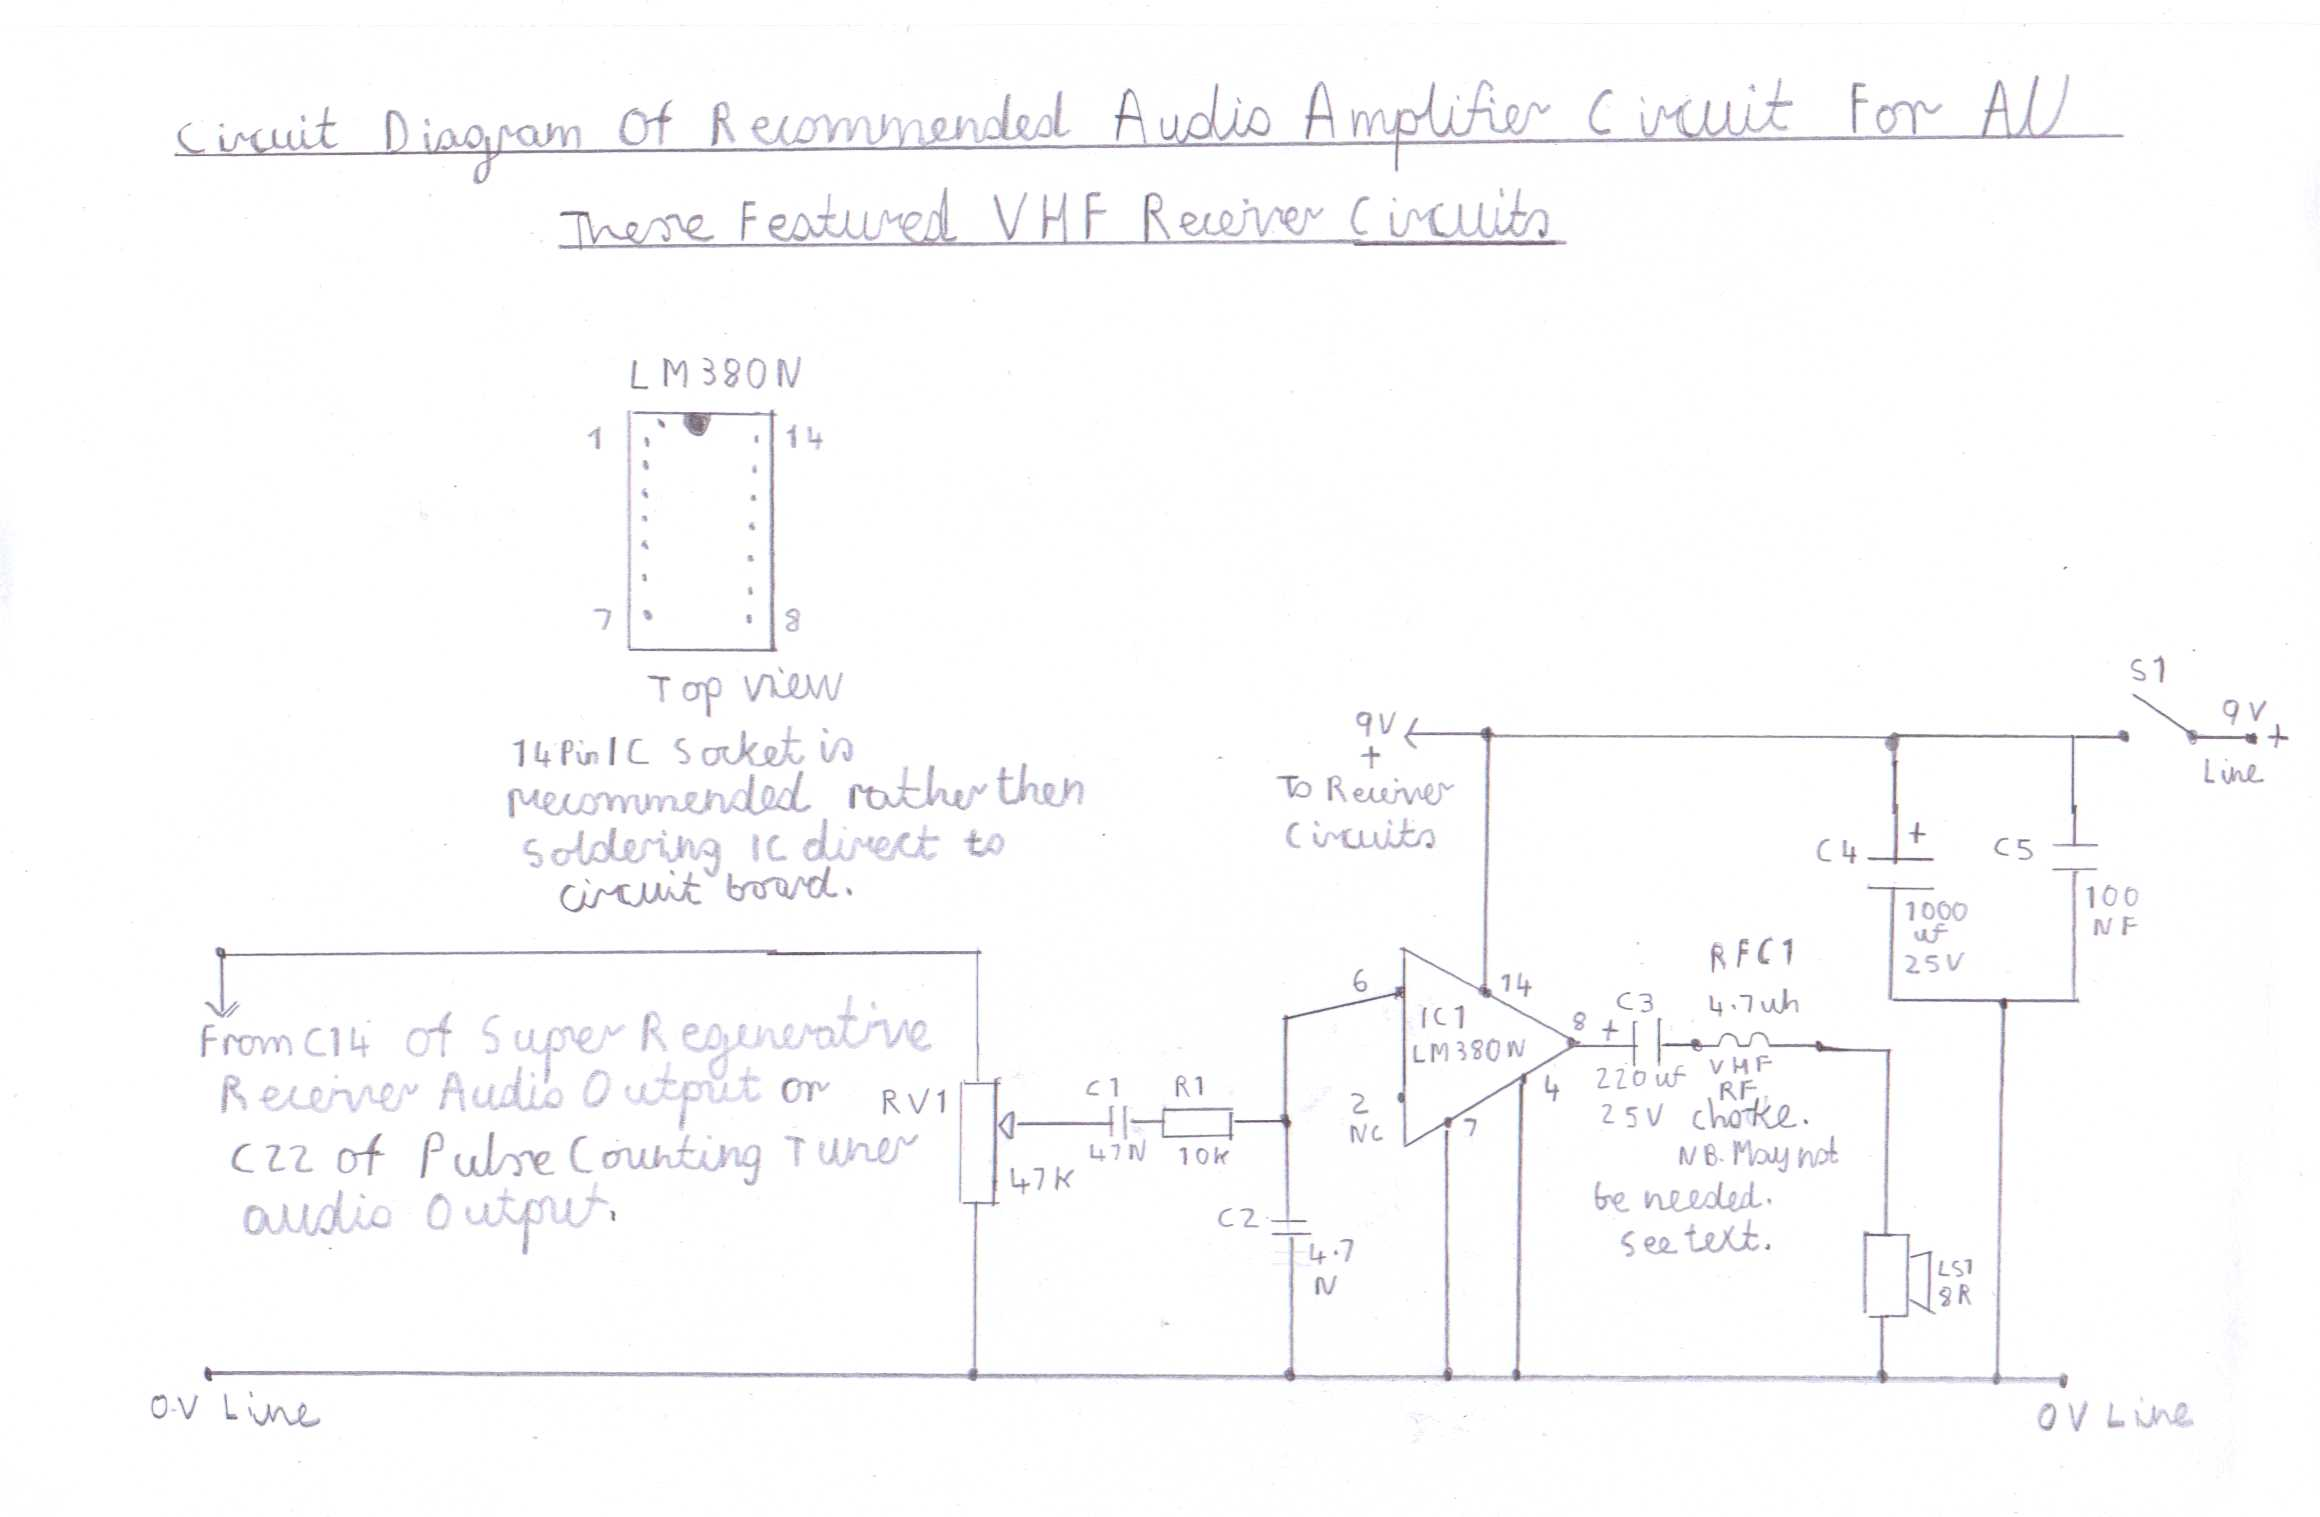 Progressive Crystal Set To Regenerative Receiver Using Safe 12v Ht Line Onetube Transmitter Schematic Diagrams And Circuit Descriptions Diagram Of Recommended Lm380 Audio Amplifier Suitable For All Versions These Vhf Receivers